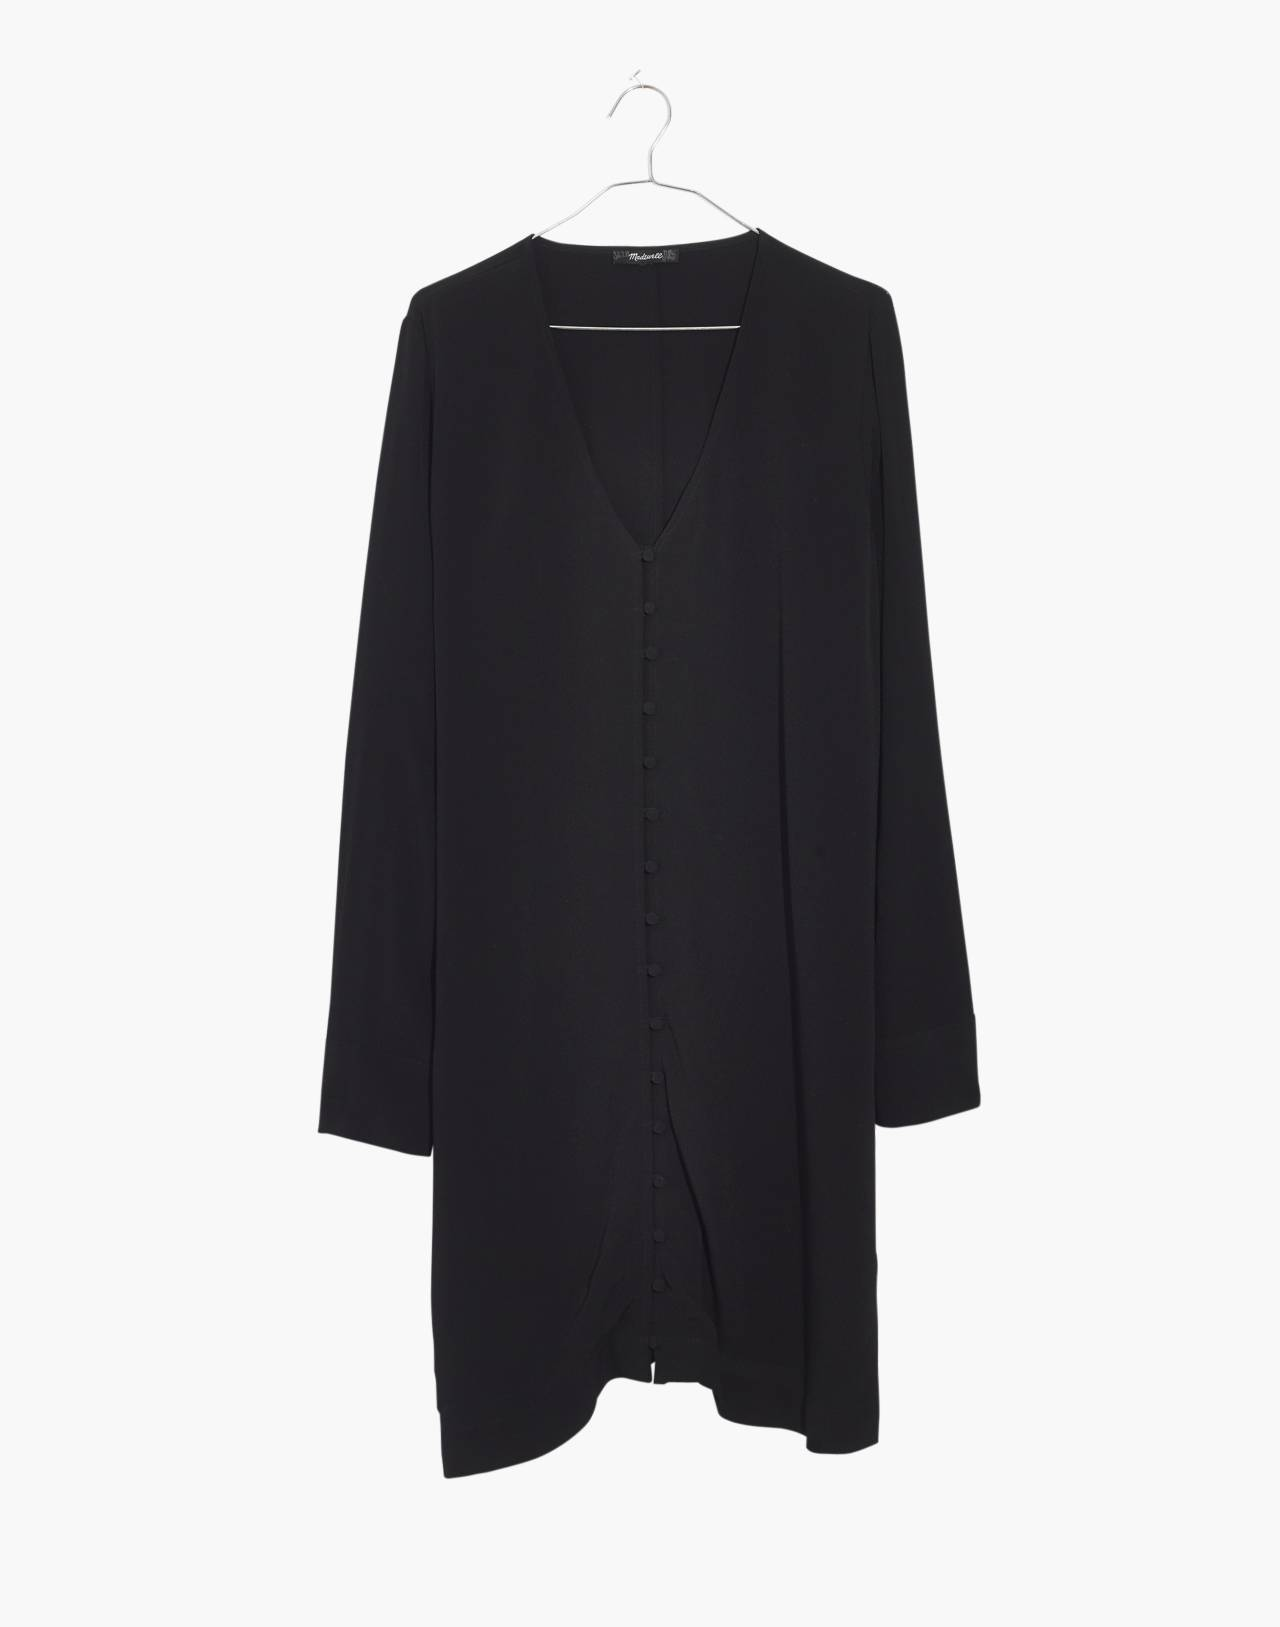 Heather Long-Sleeve Button-Front Dress in true black image 4